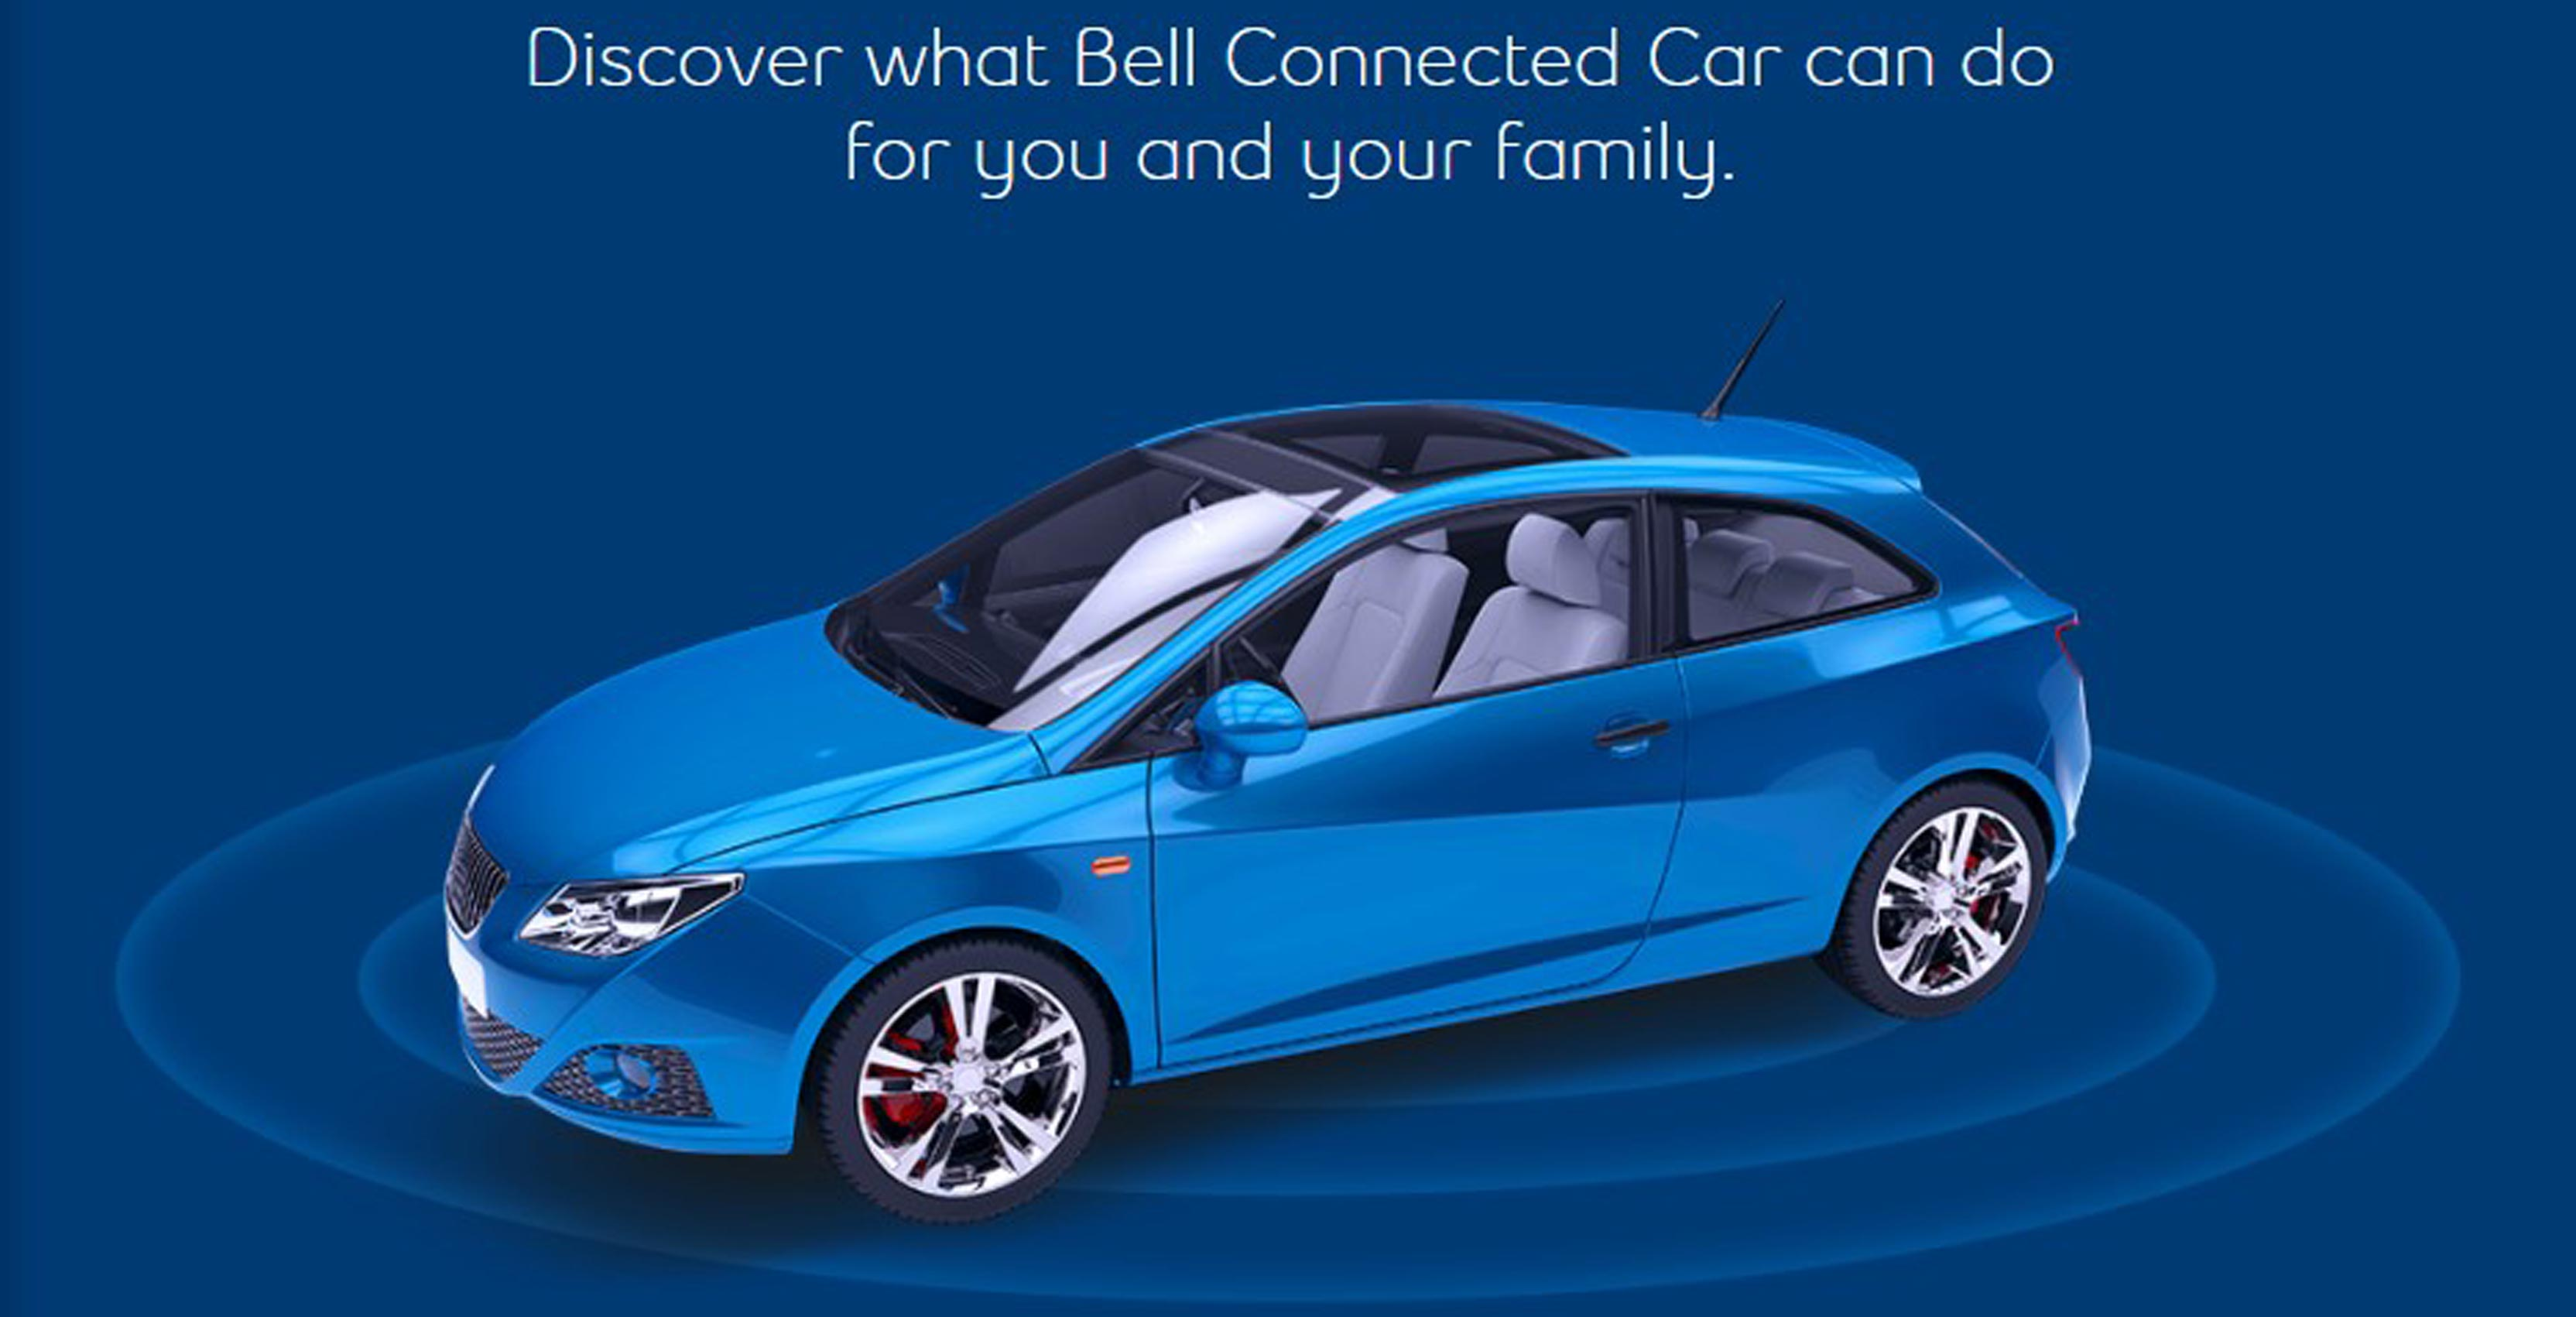 Bell Connected Car